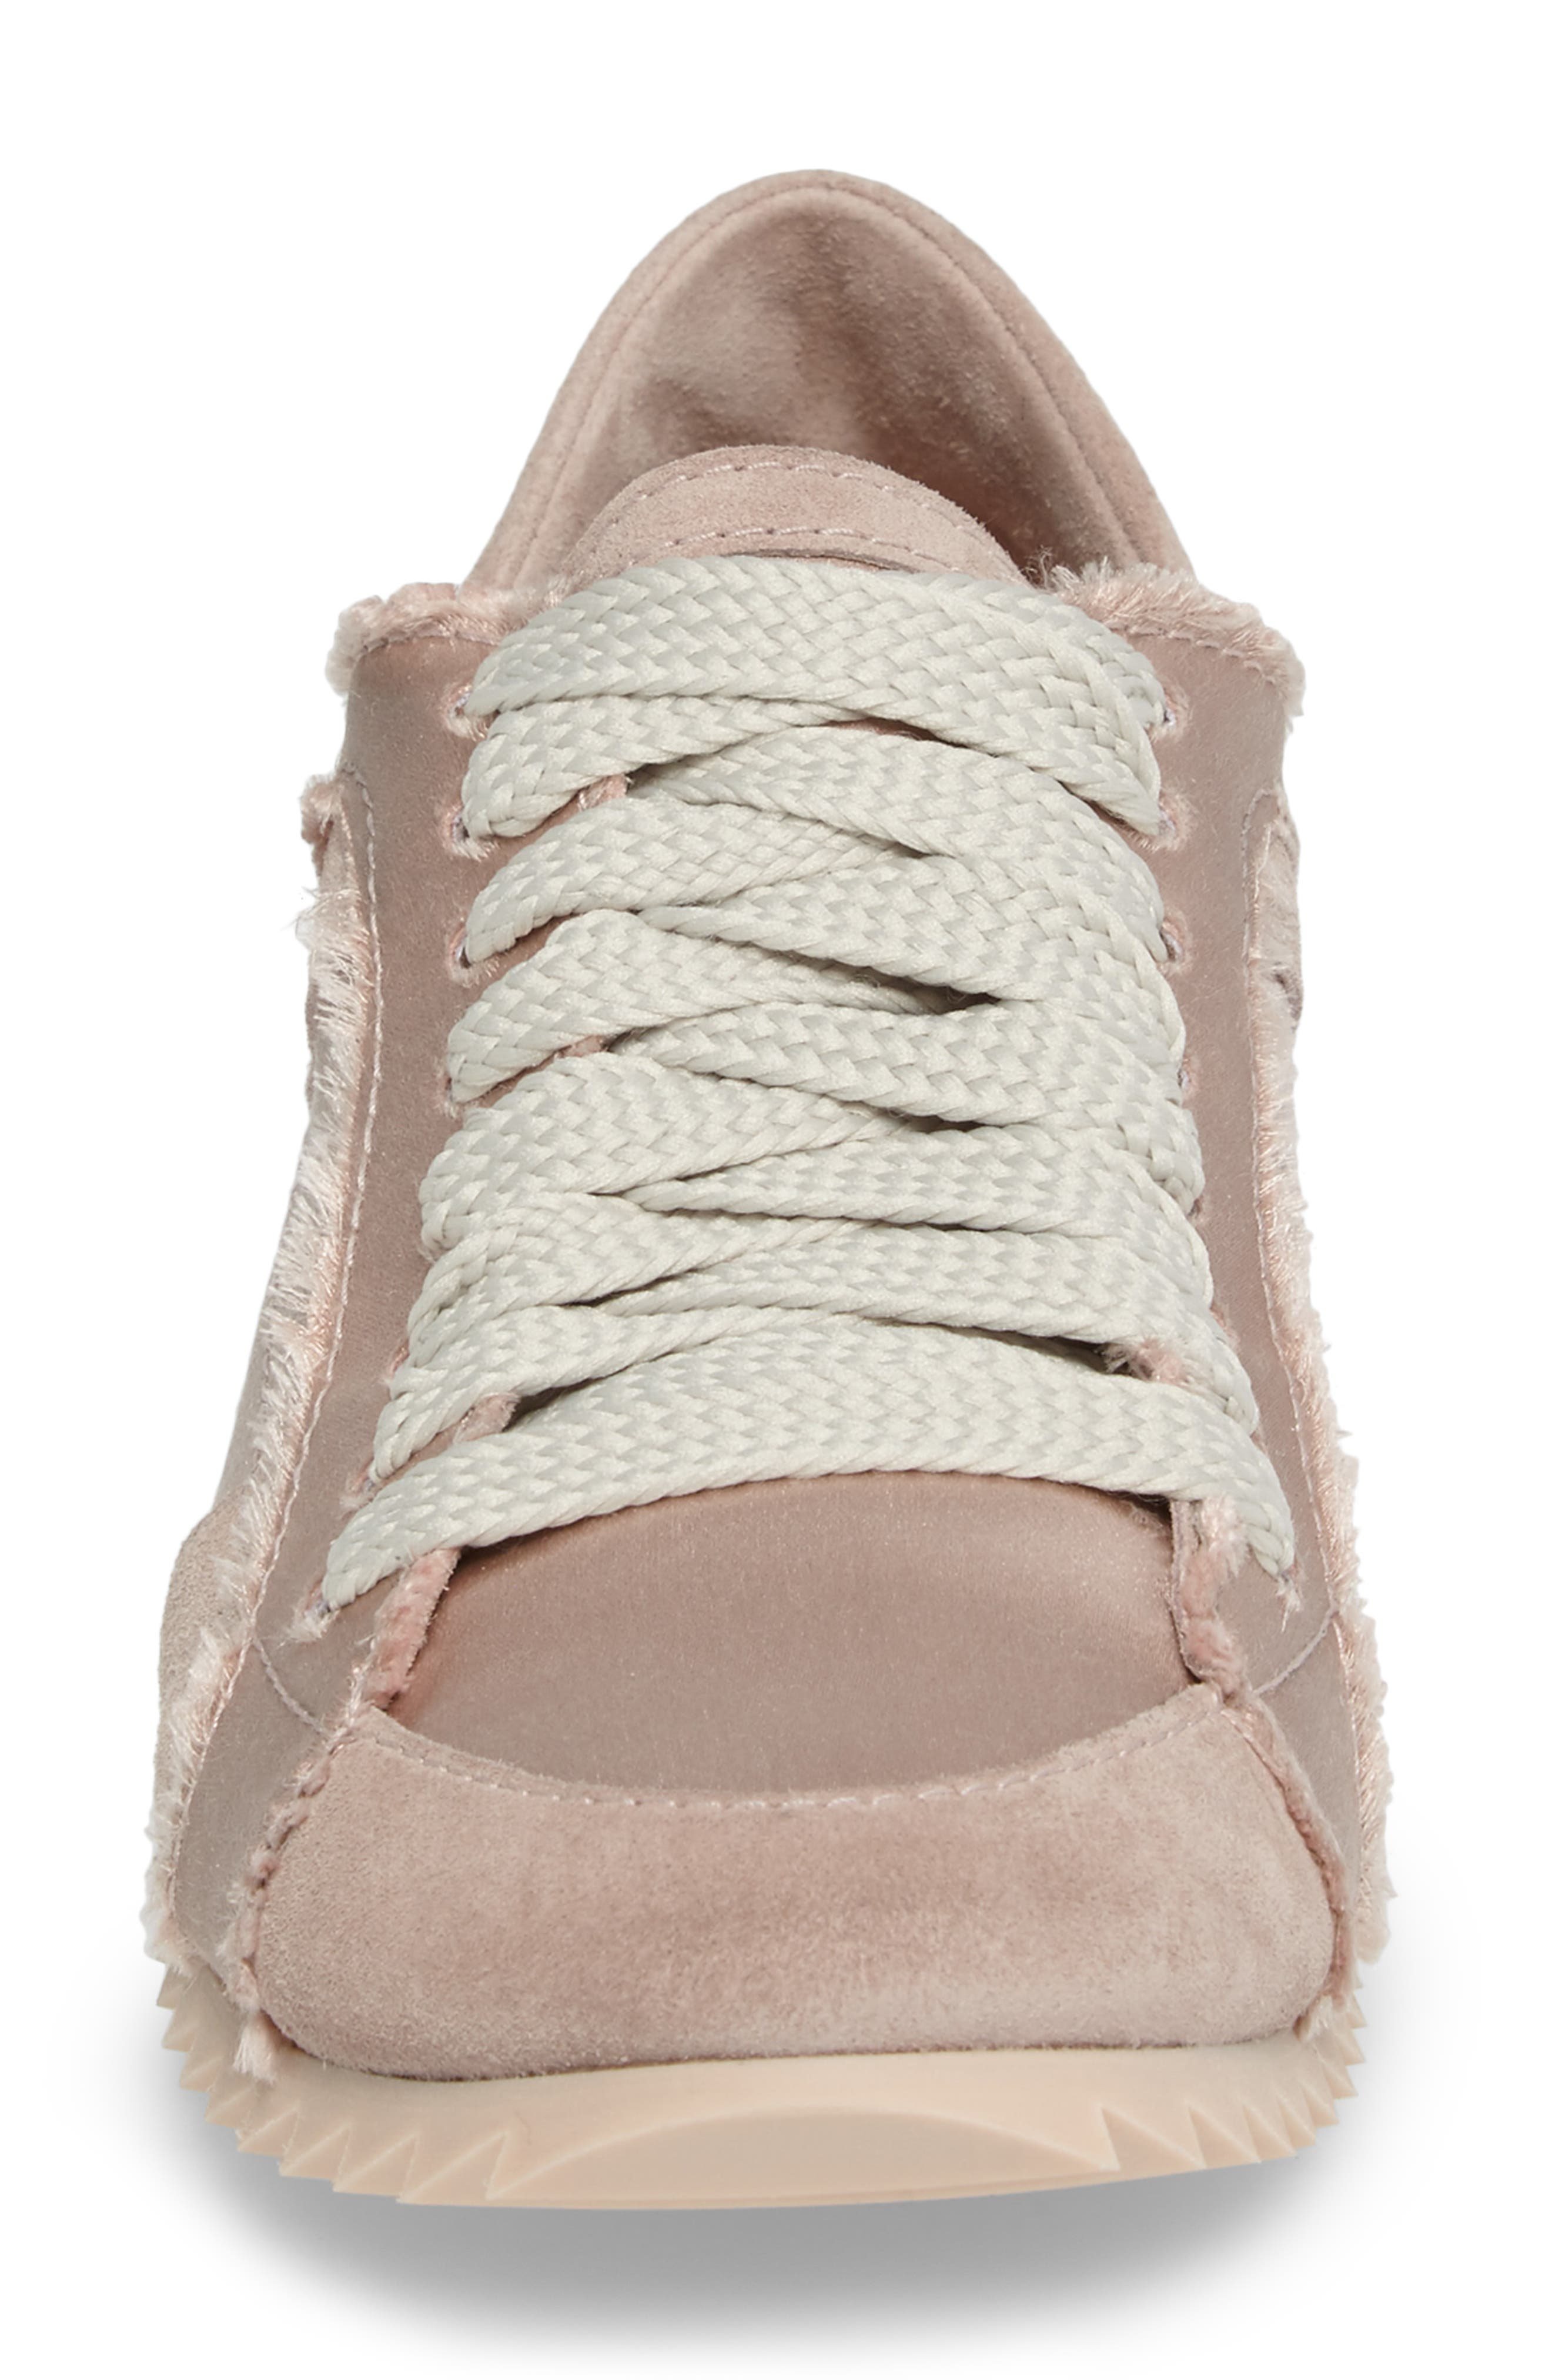 Cristina Trainer Sneaker,                             Alternate thumbnail 4, color,                             Light Pink Satin